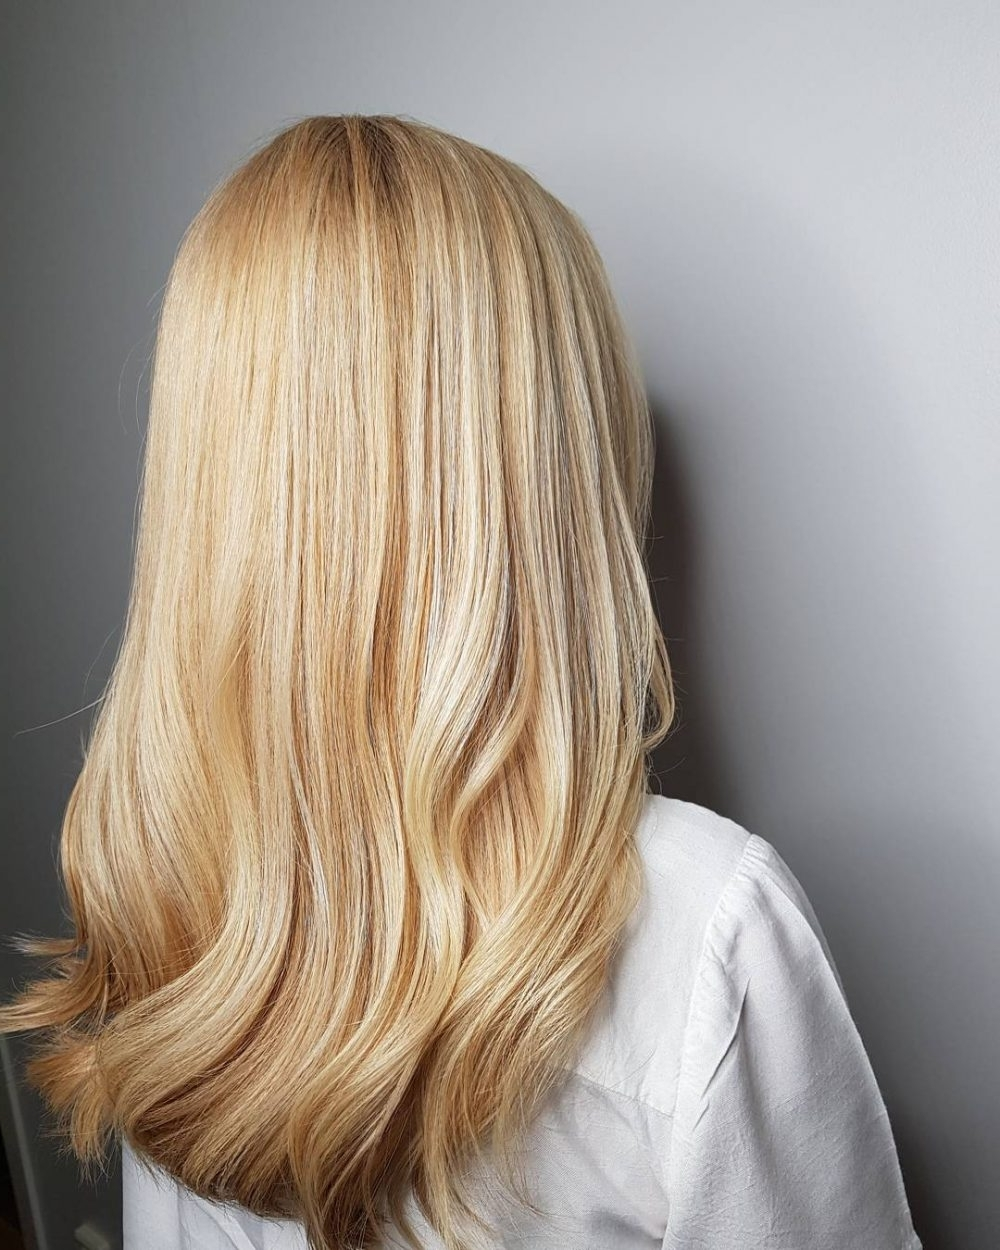 21 Hottest Honey Blonde Hair Color Ideas Of 2018 For Widely Used Layered Bright And Beautiful Locks Blonde Hairstyles (View 13 of 20)